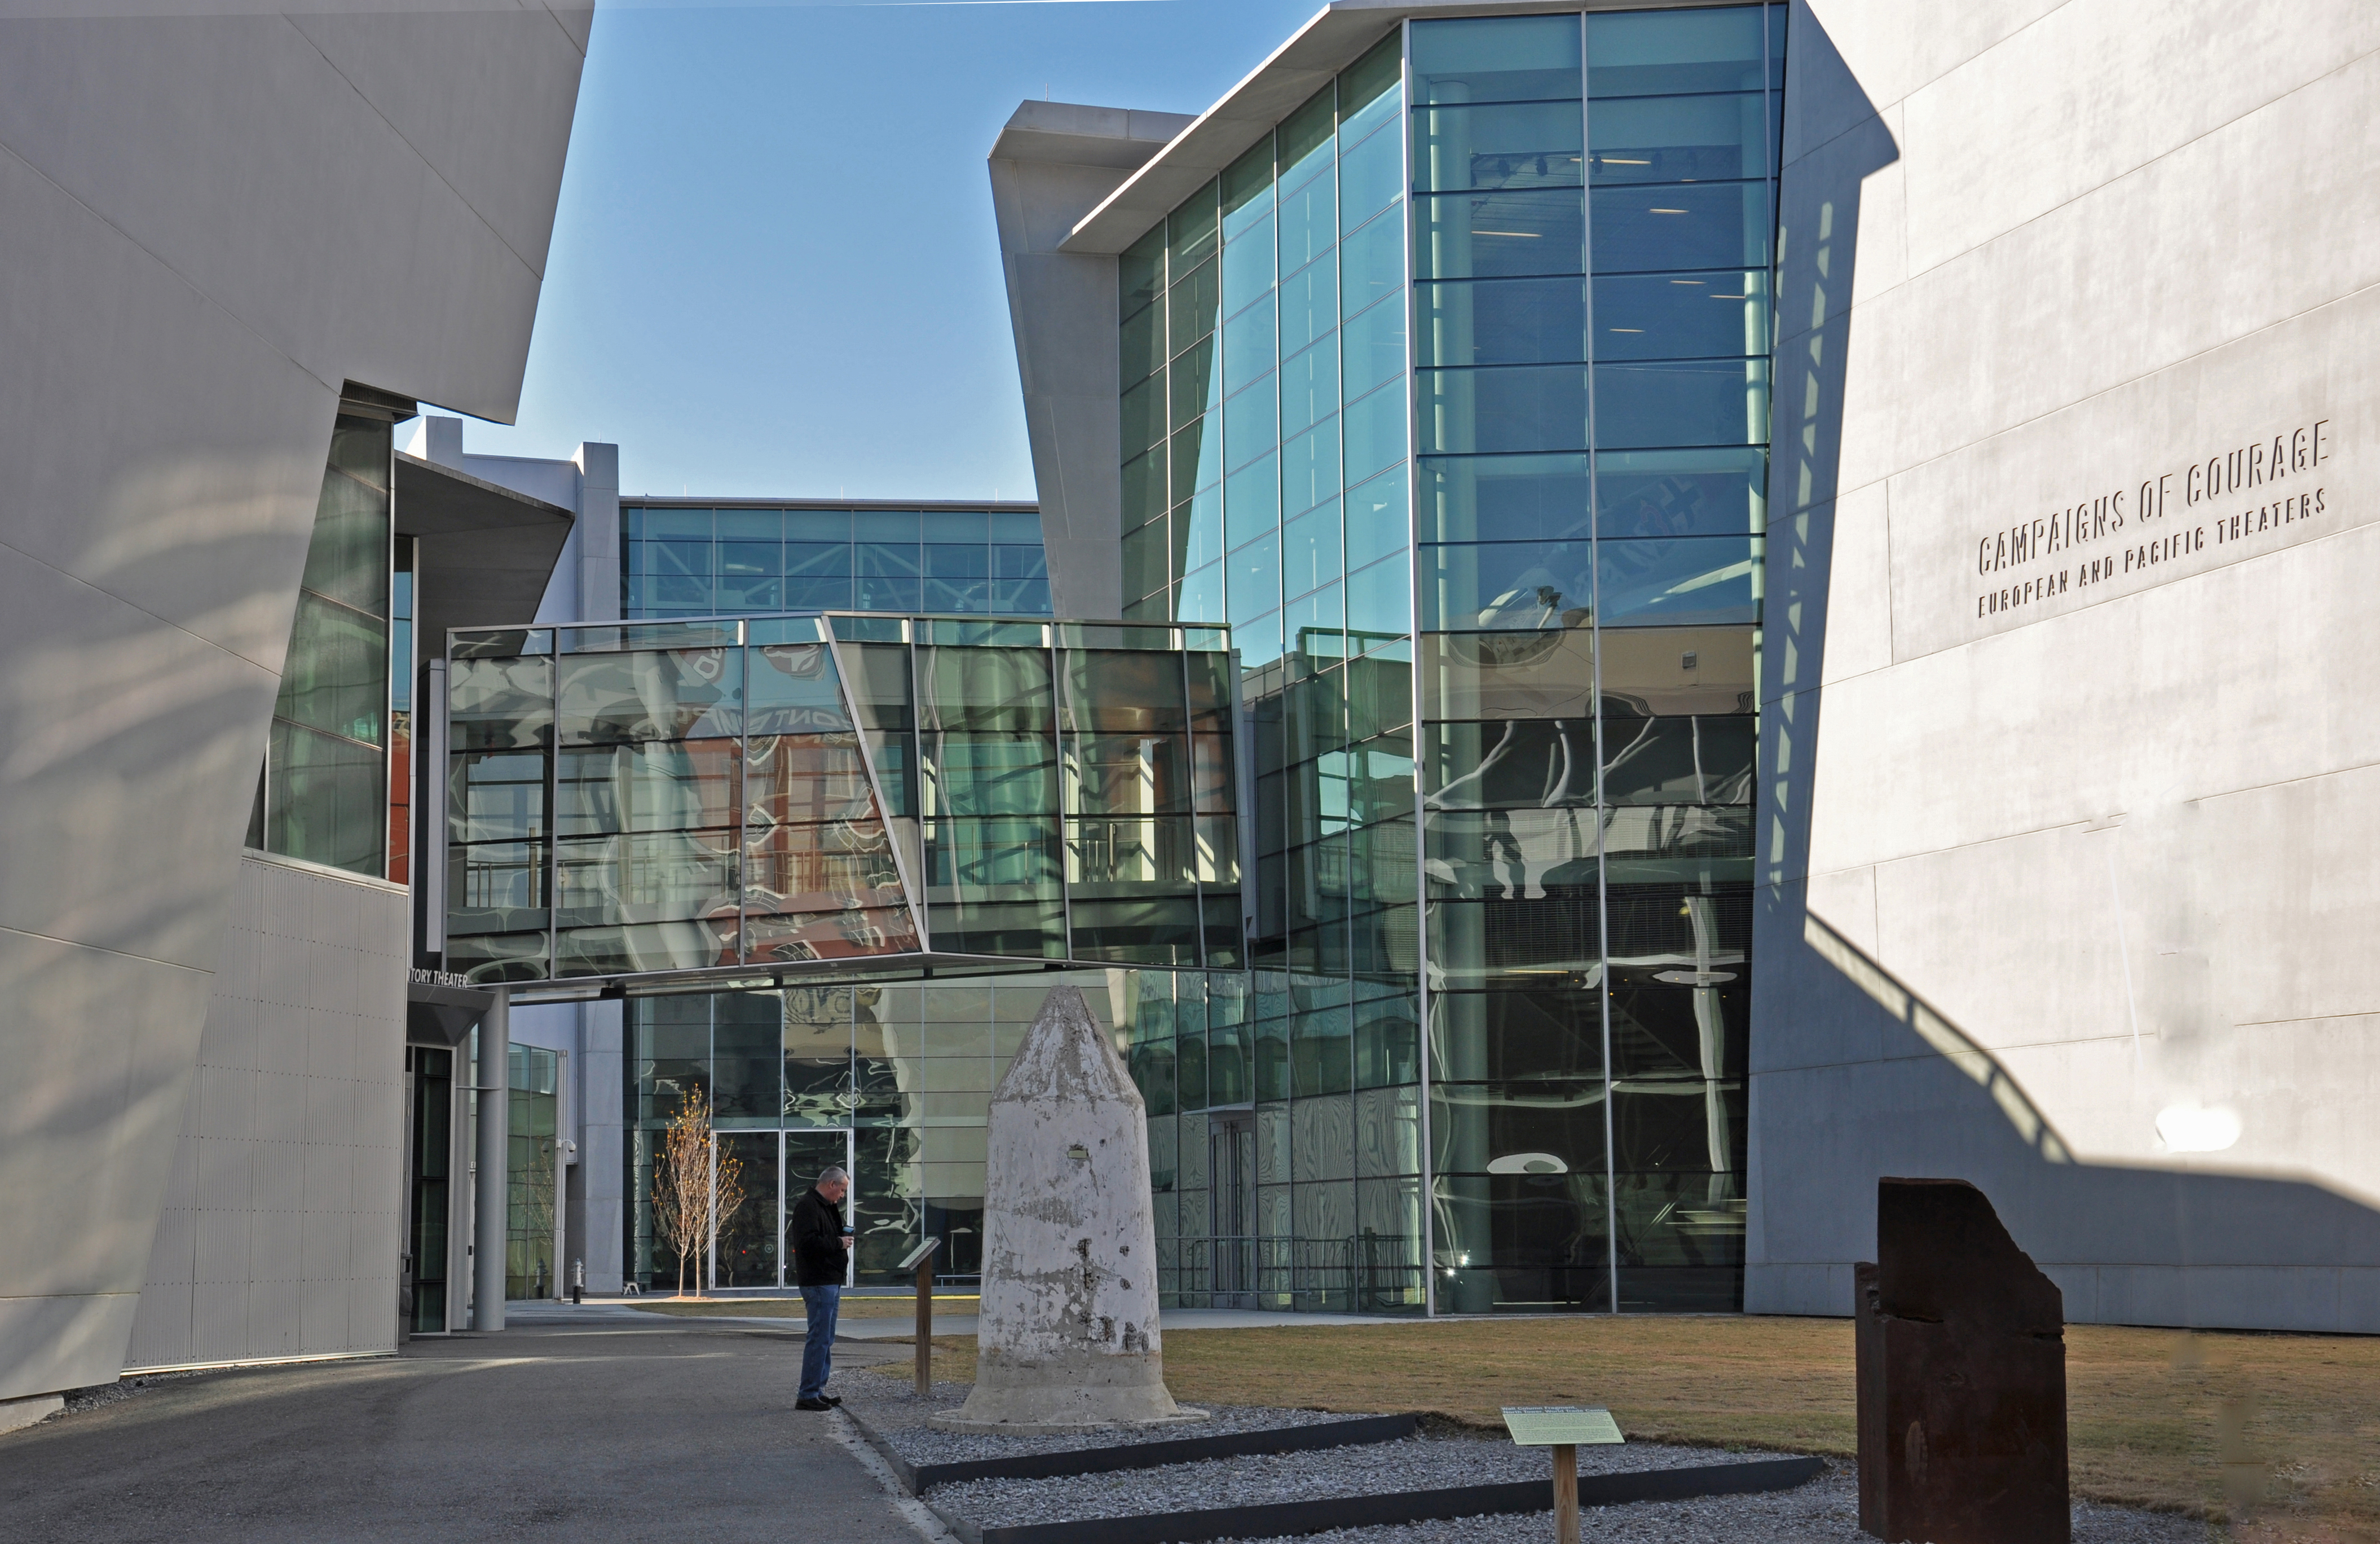 The Campaigns of Courage Pavilion is the heart of the National WWII Museum